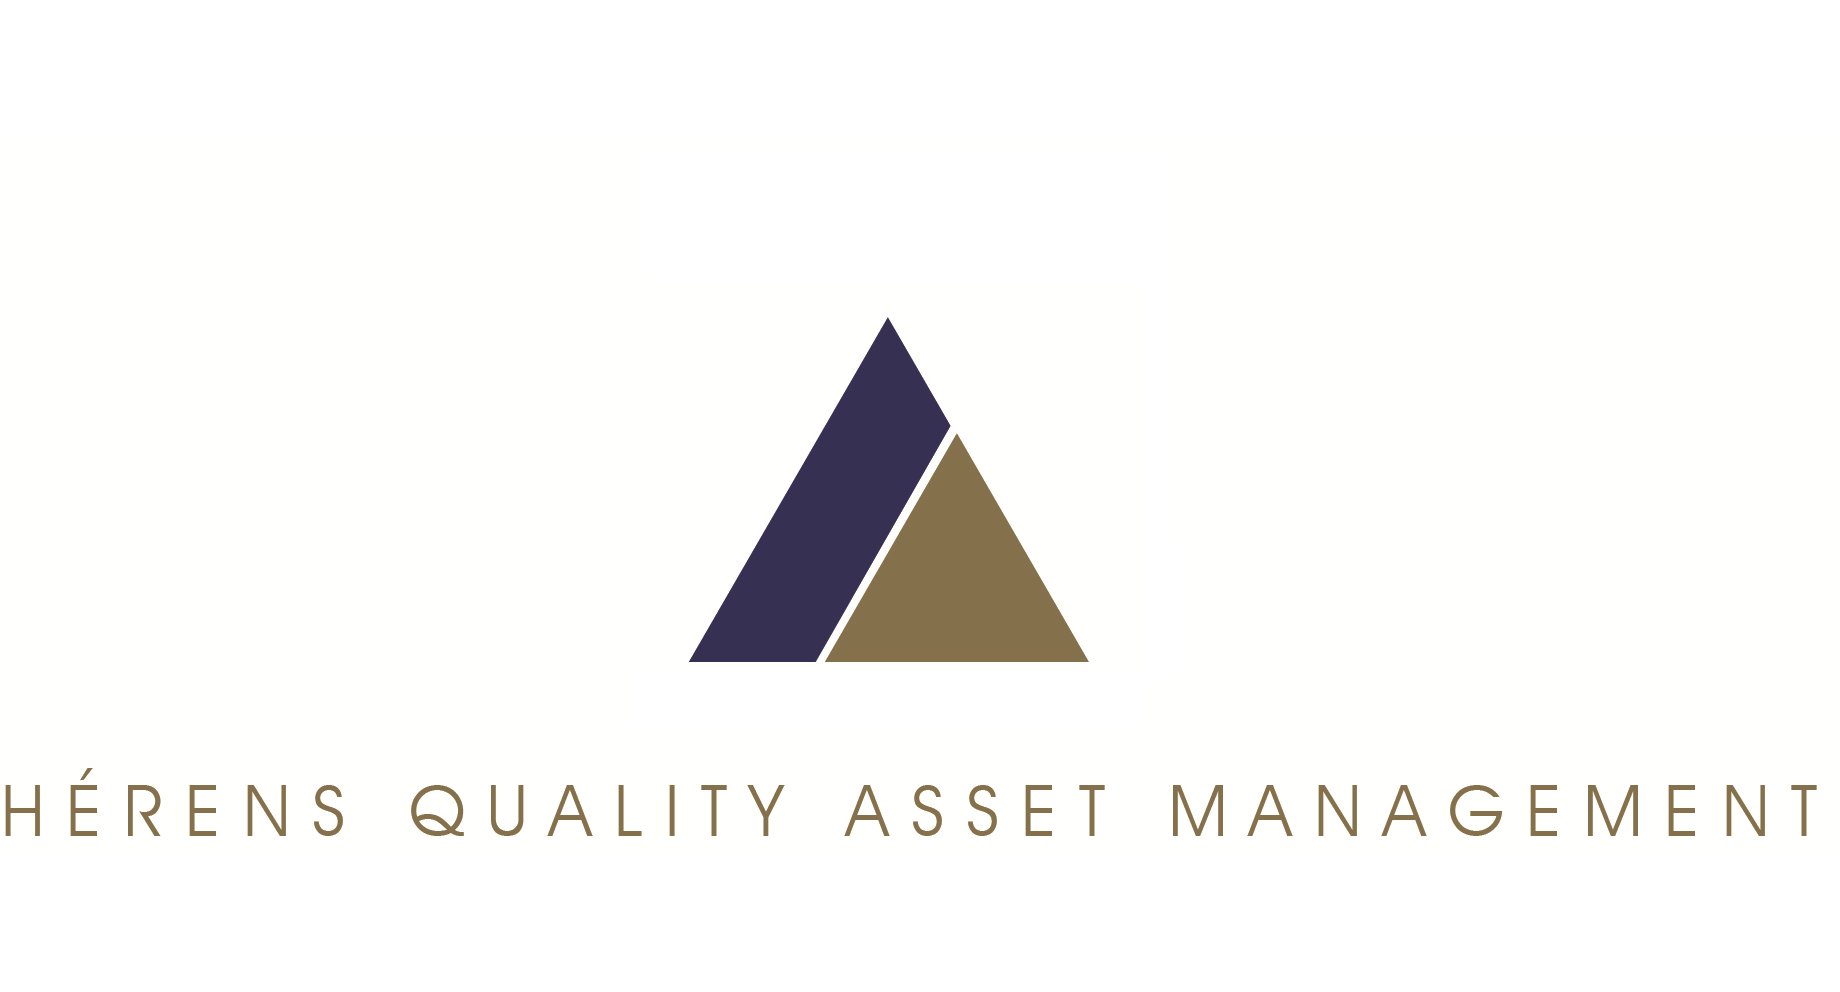 Herens Asset Management Consulting